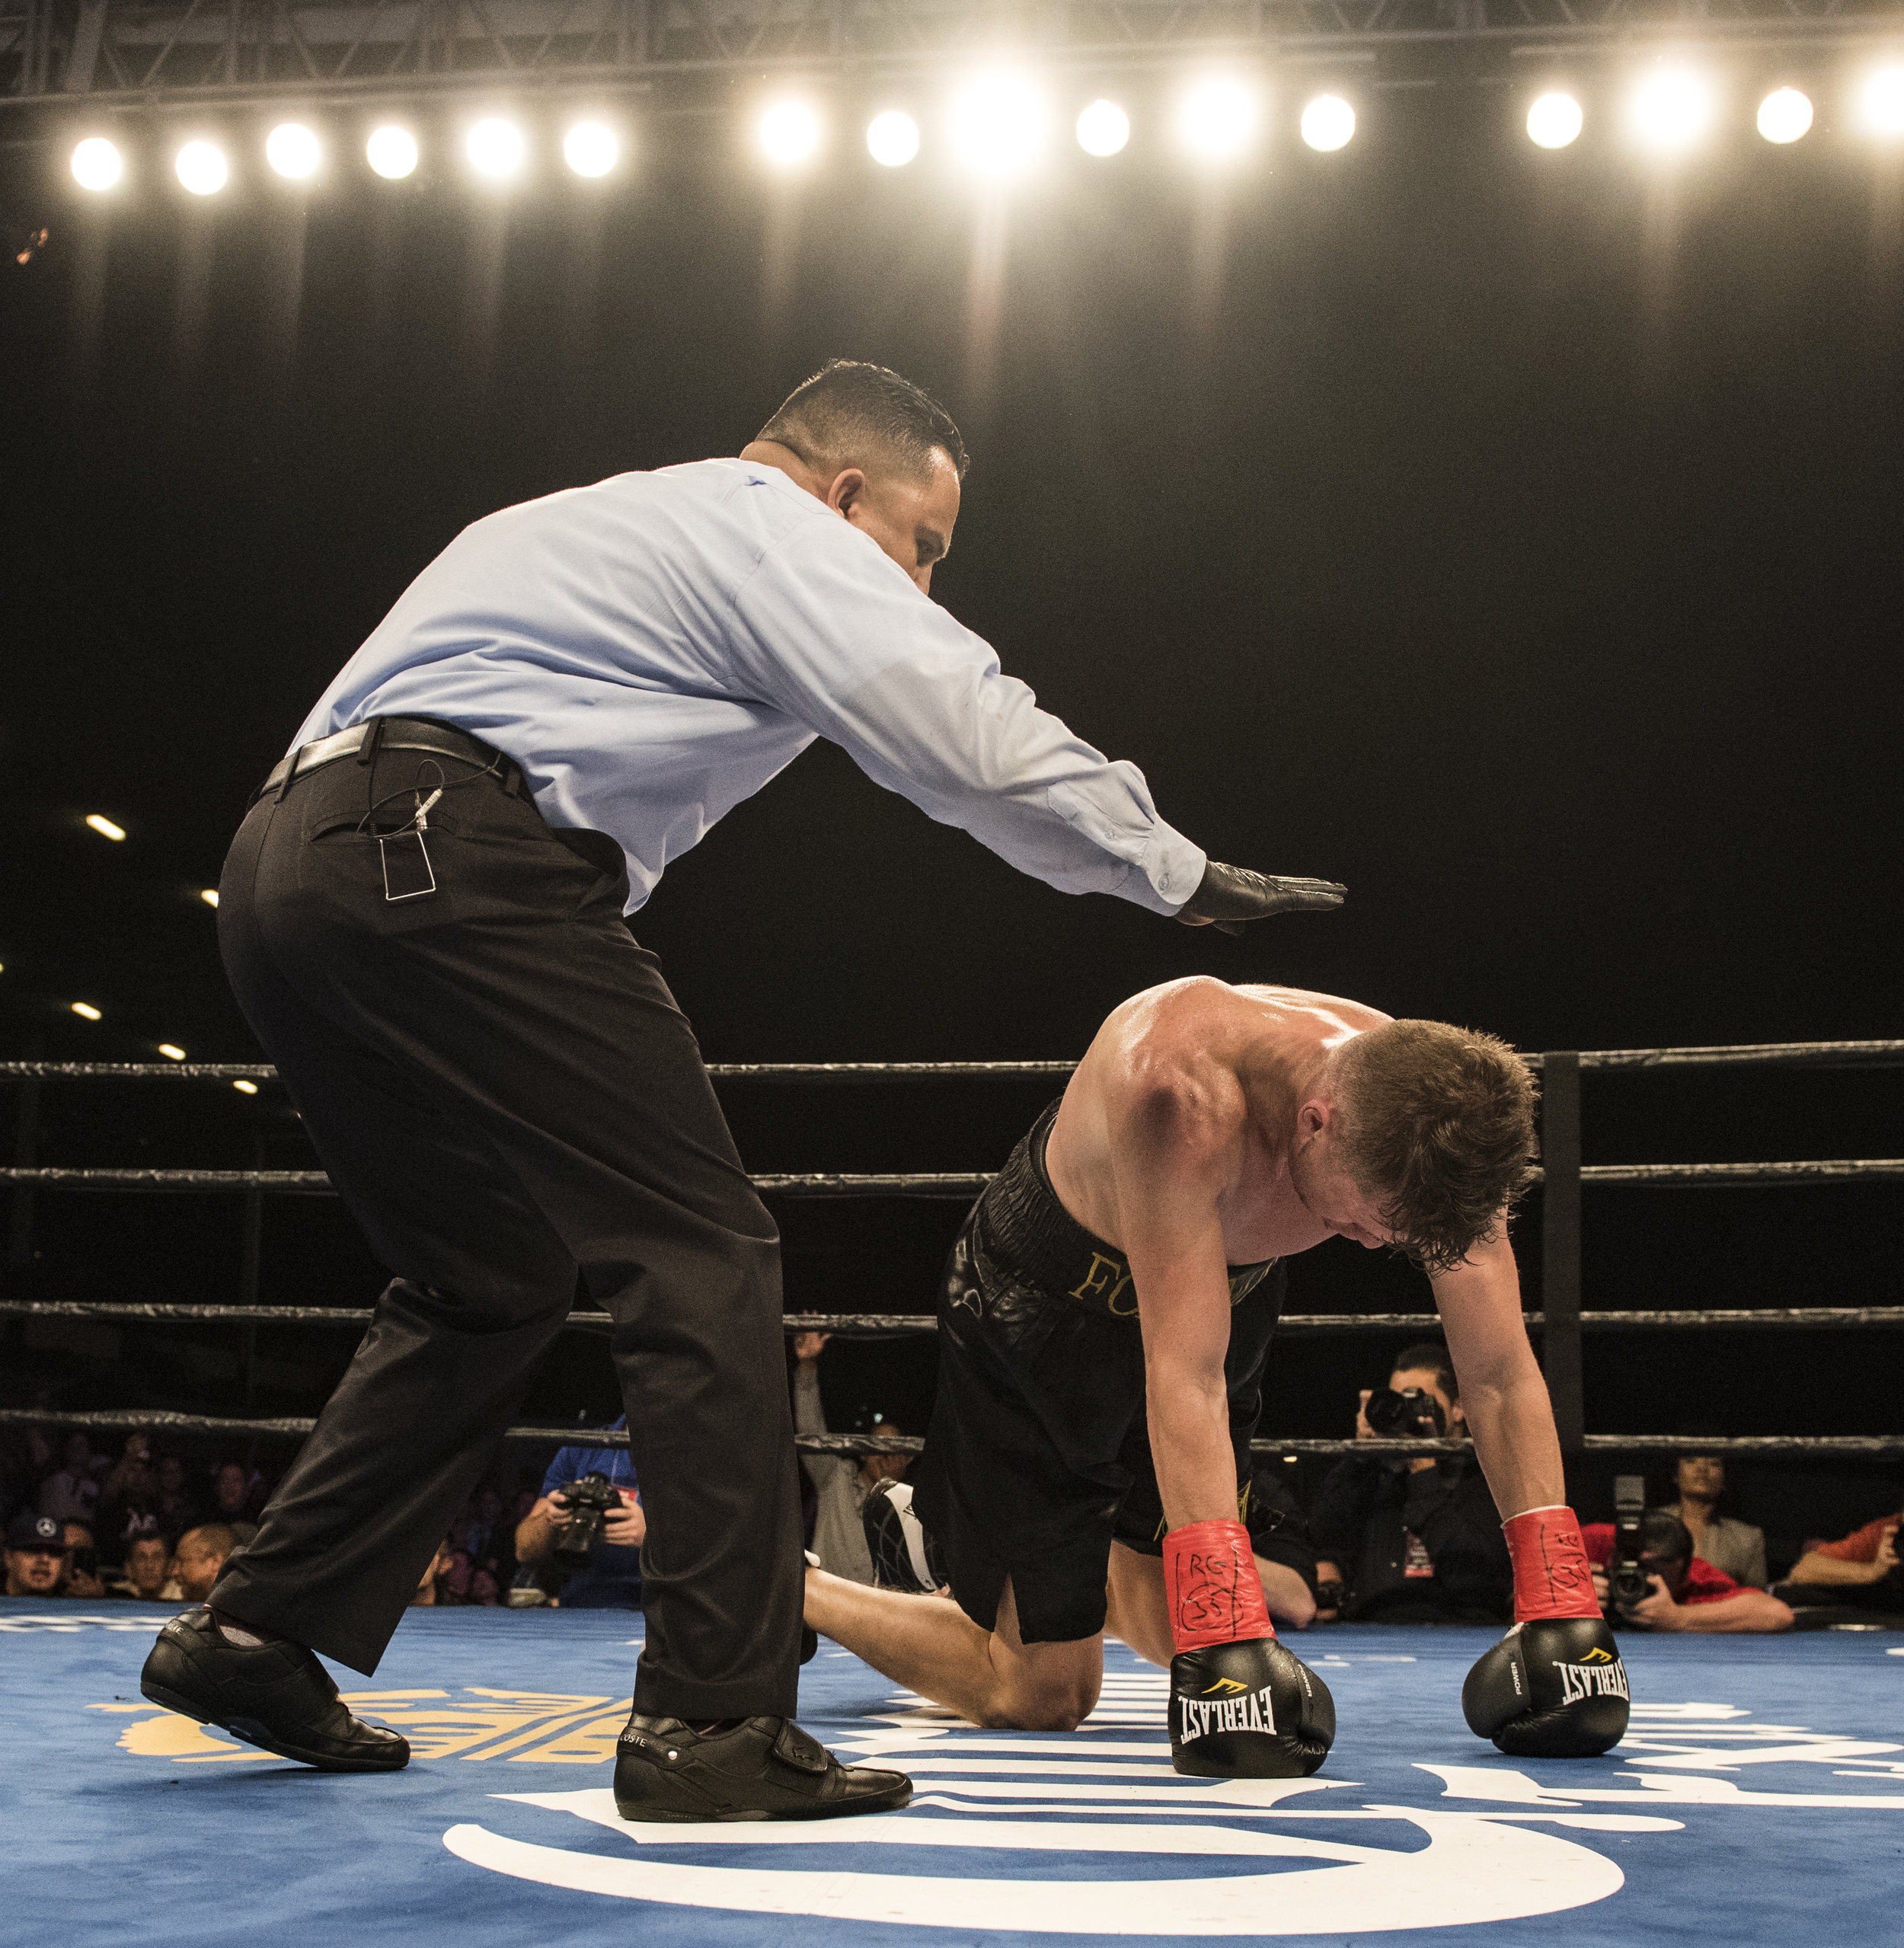 Cuban boxer Erislandy Lara knocks out Yuri Foreman with a left hook in the 4th round.